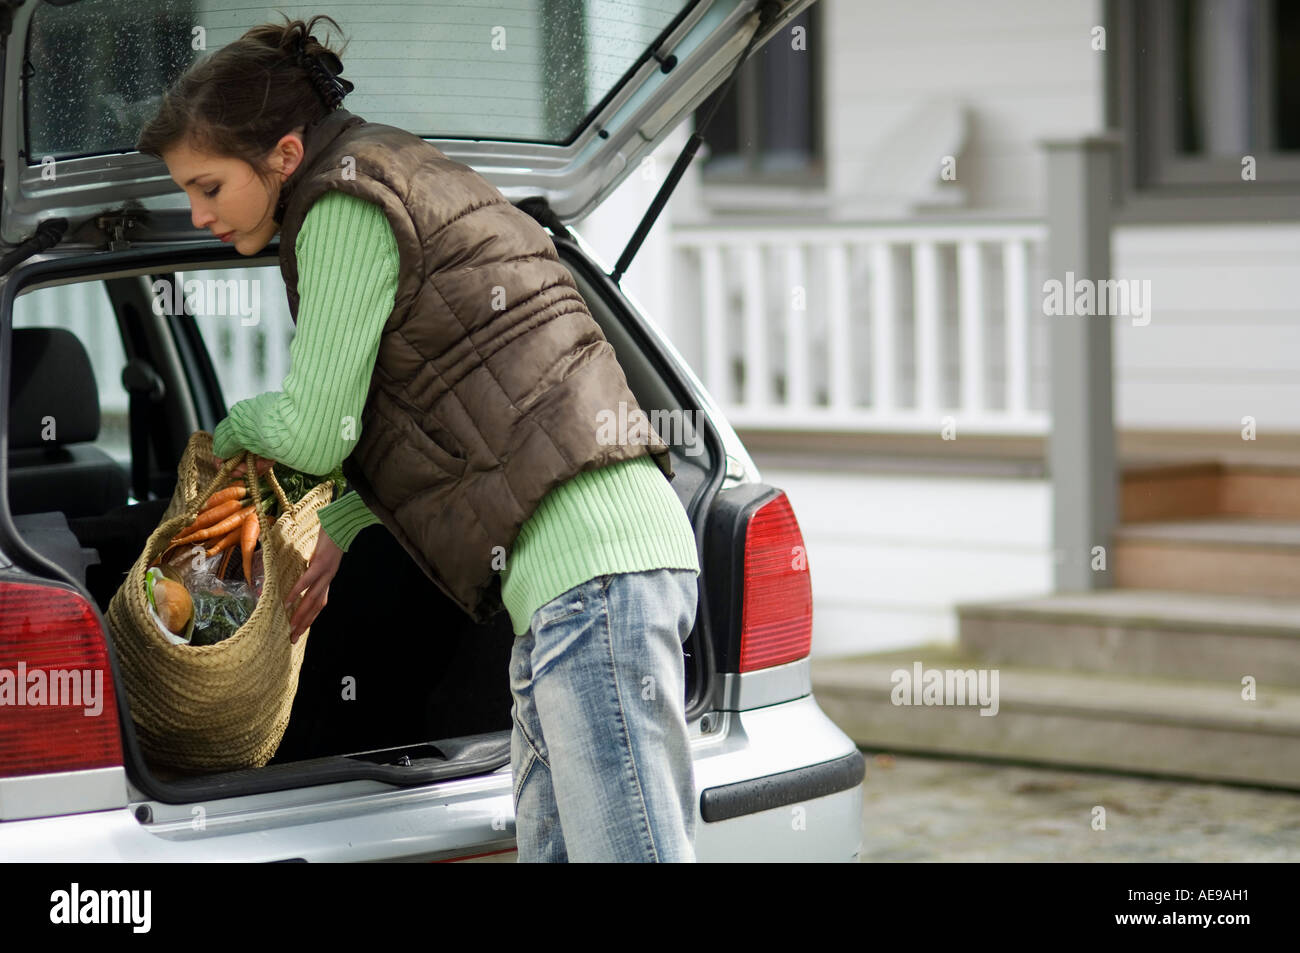 Young woman taking a shopping basket out of a car trunk - Stock Image